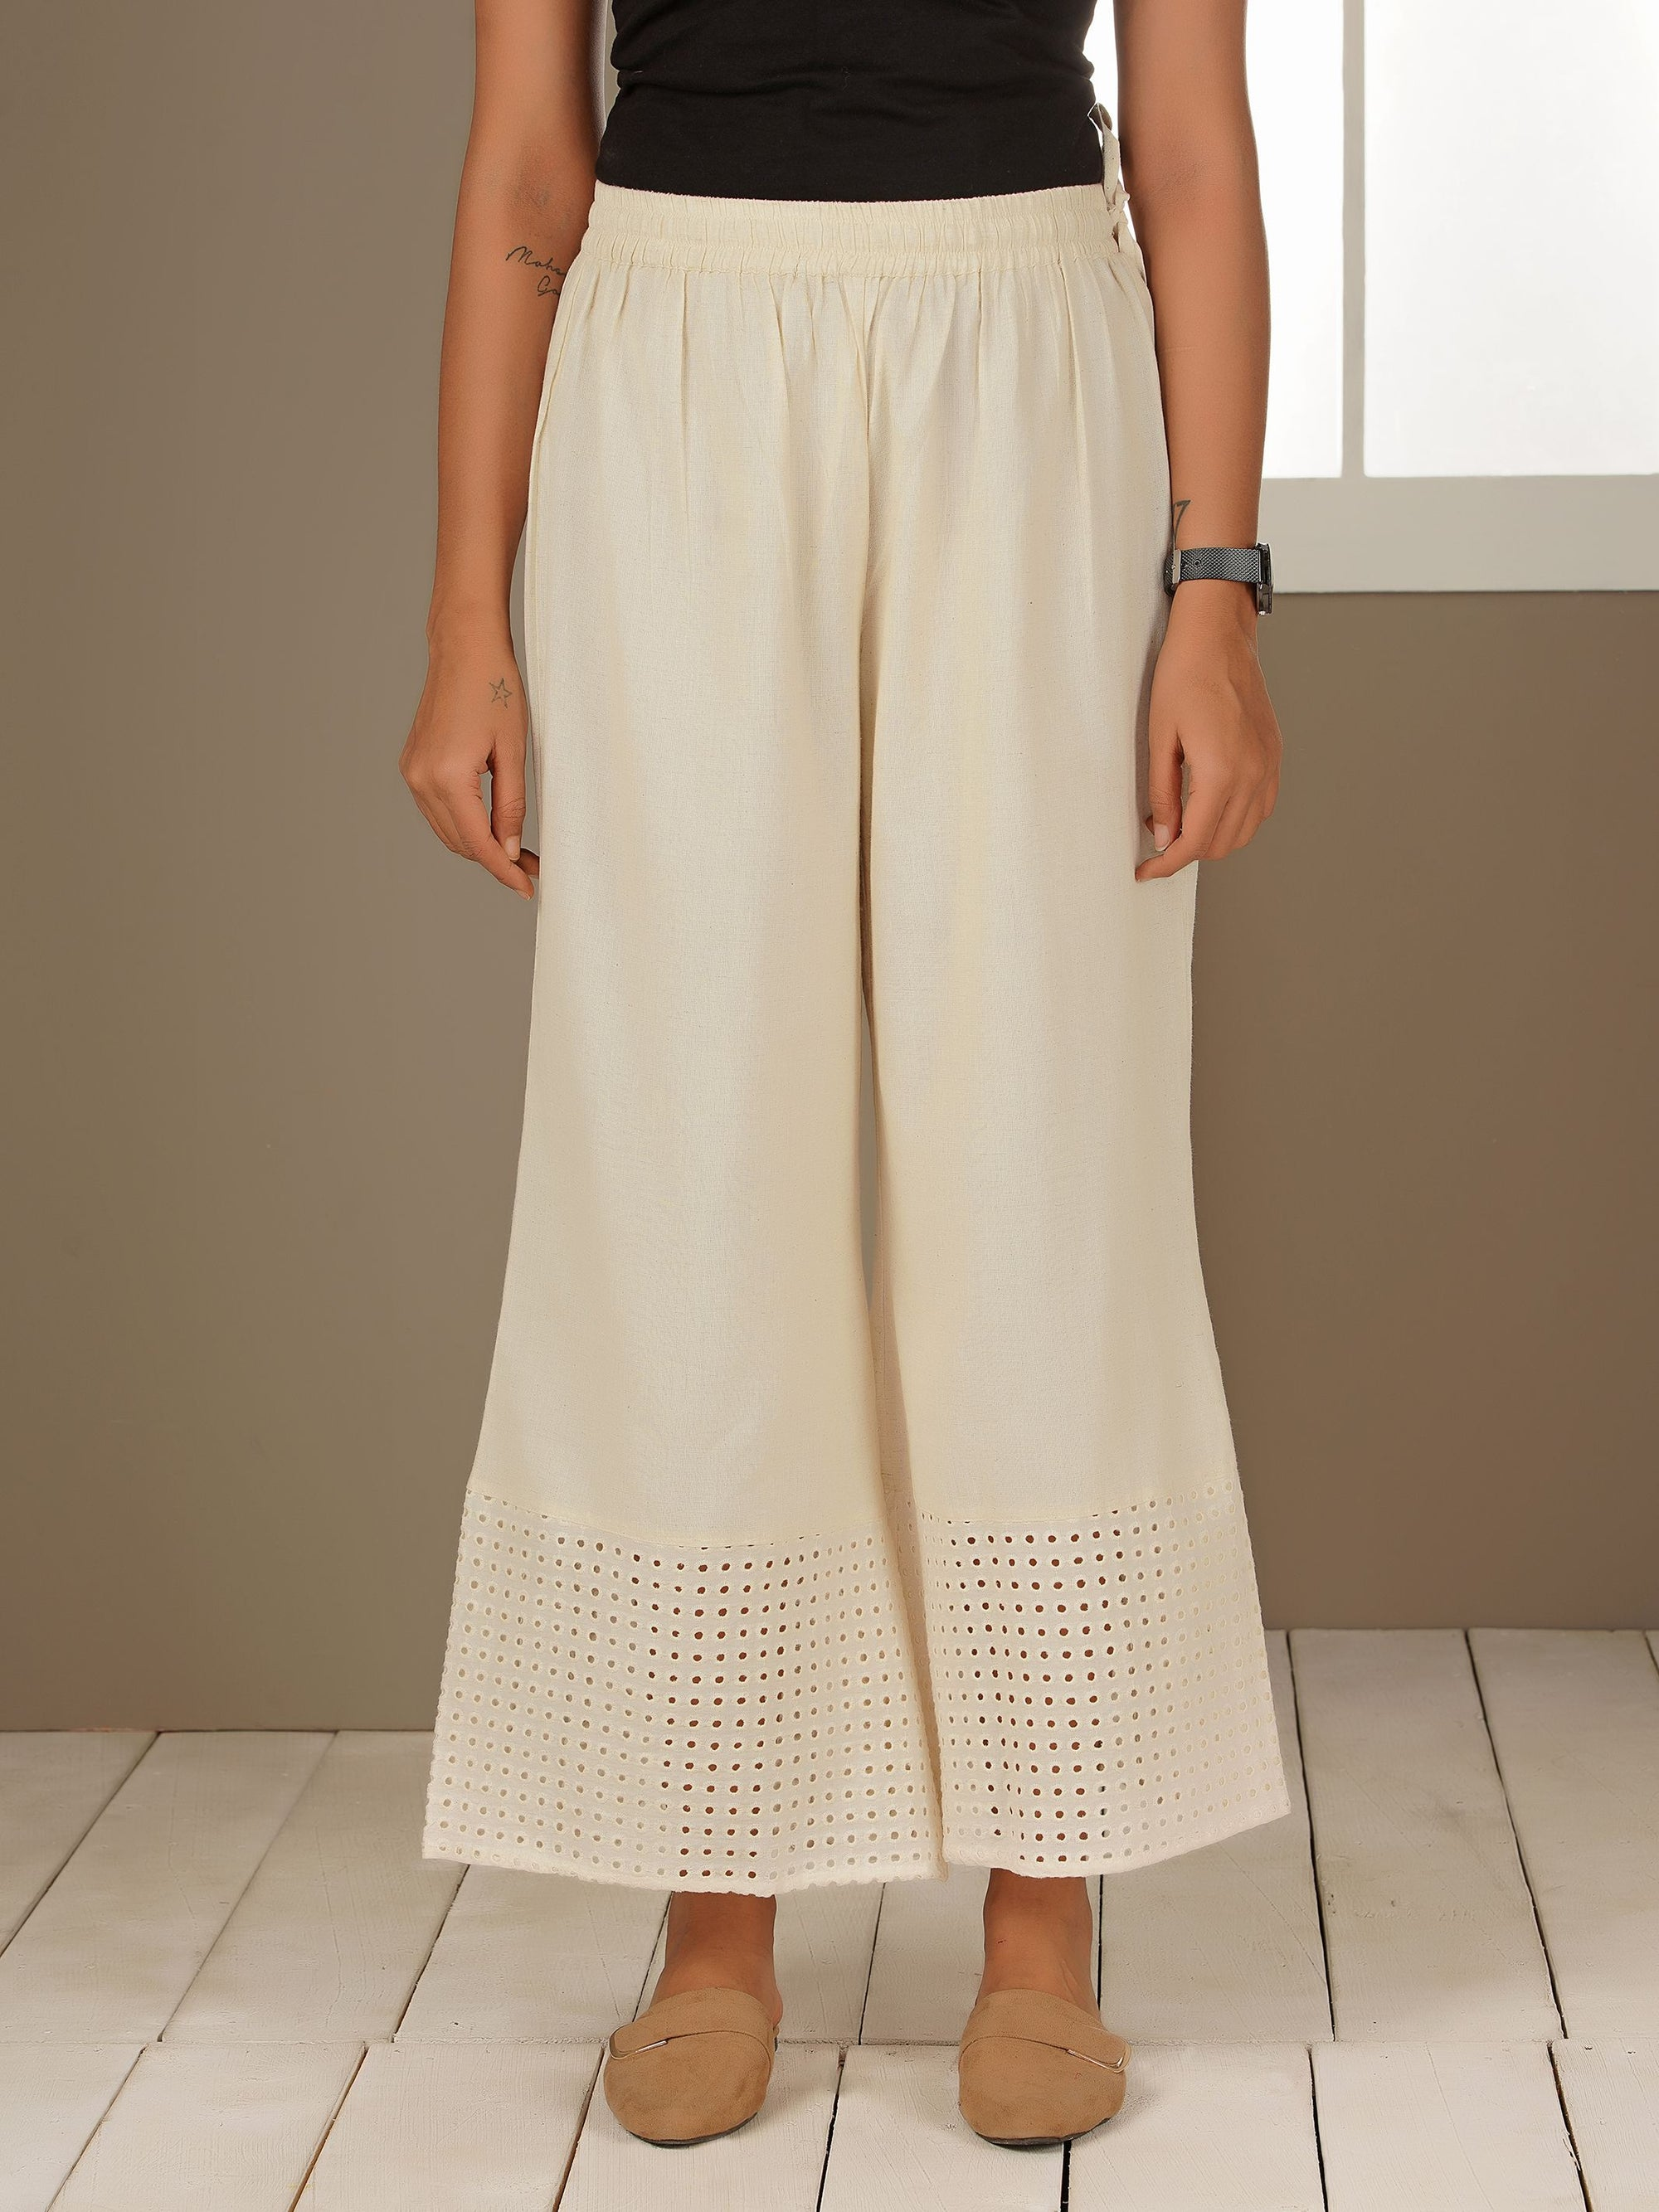 Floral Embroidered Schiffli Palazzo Pants - White